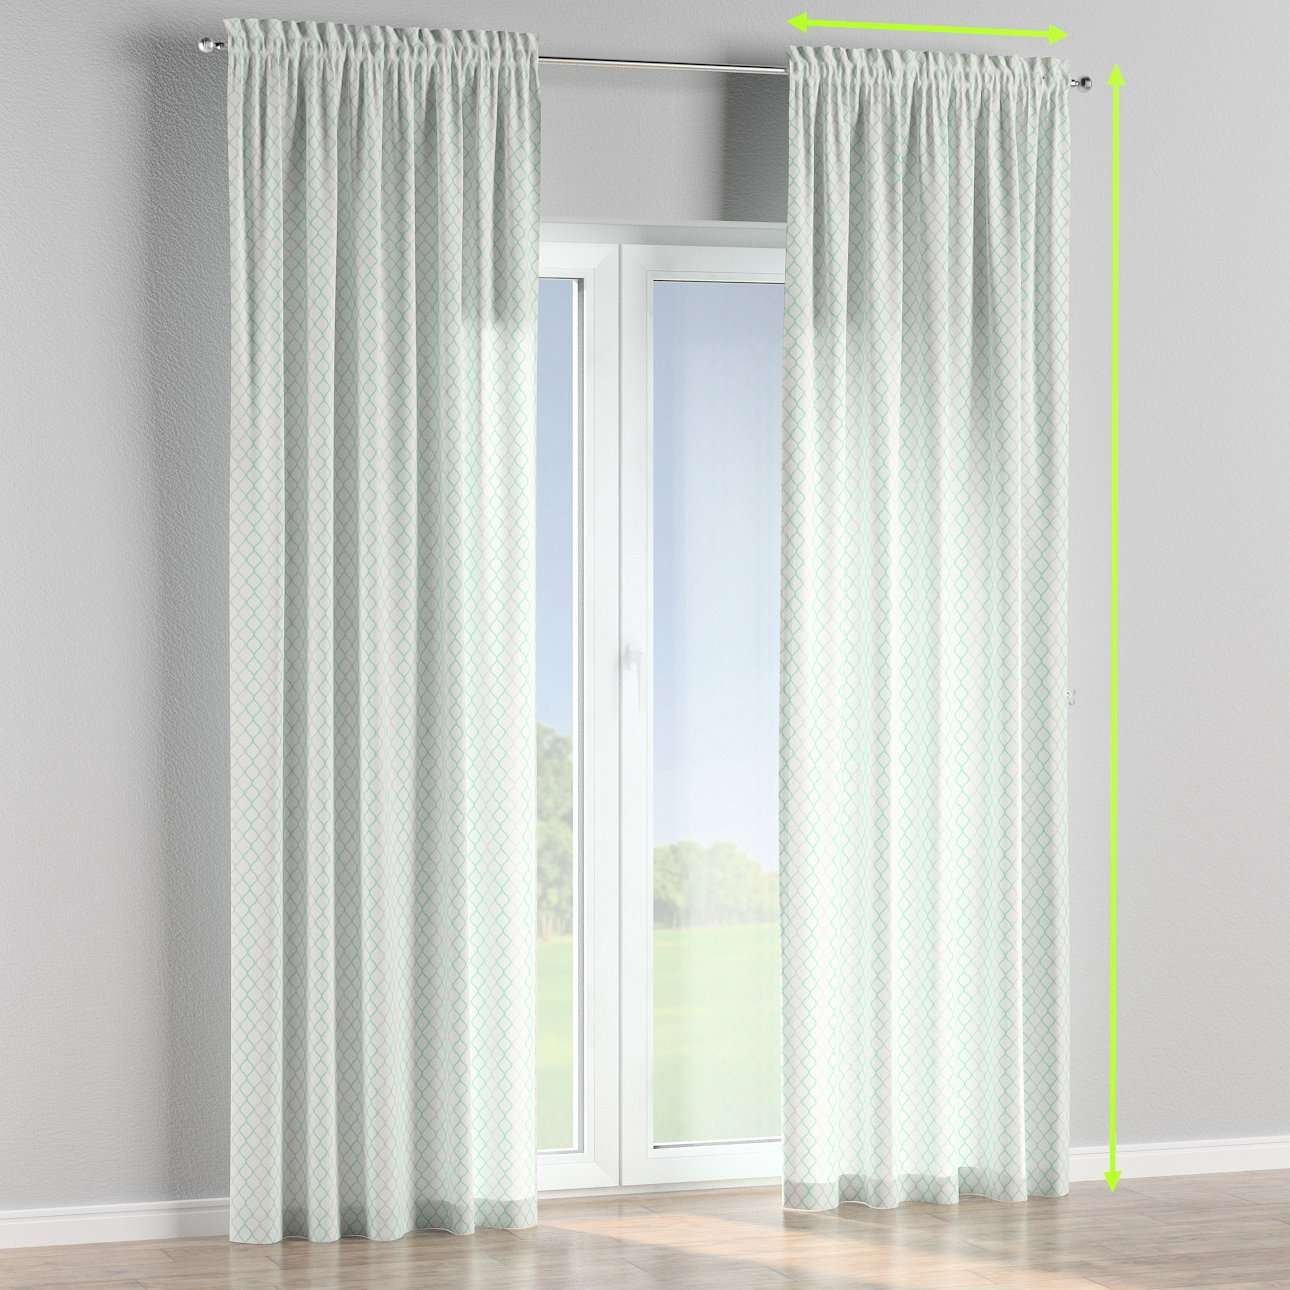 Slot and frill lined curtains in collection Geometric, fabric: 141-47